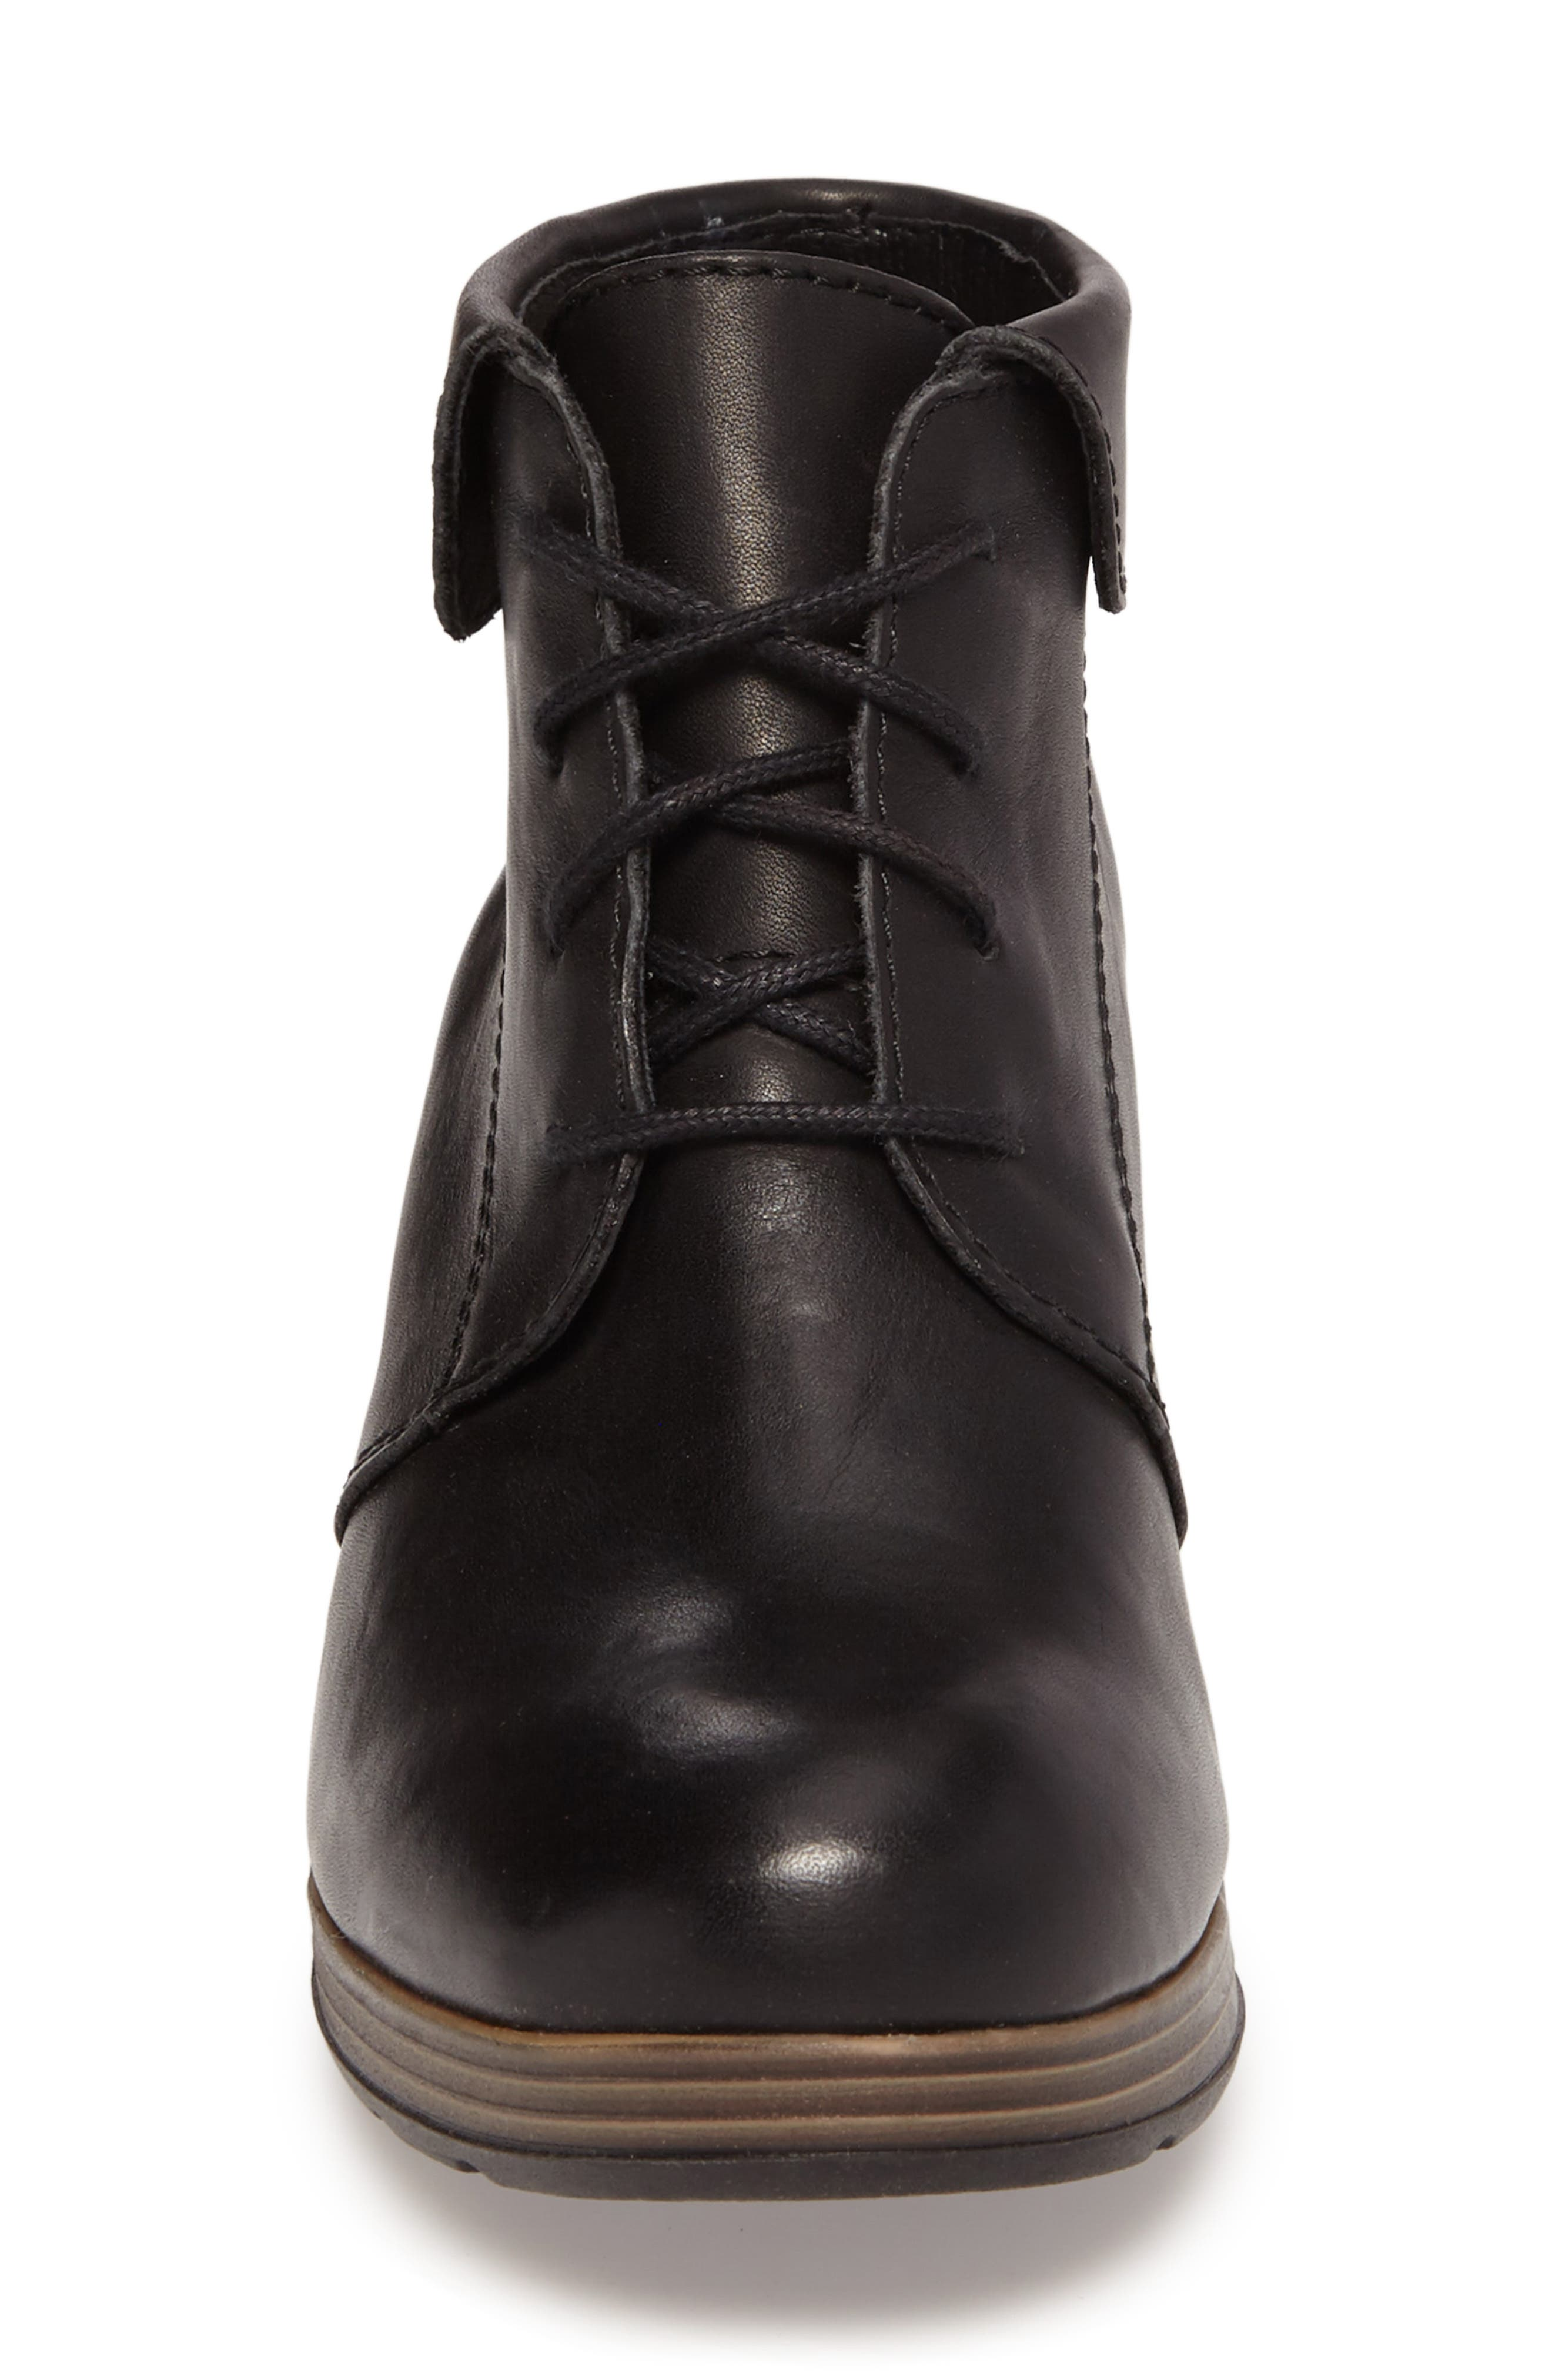 Jacquerie Lace-Up Bootie,                             Alternate thumbnail 4, color,                             Black Leather